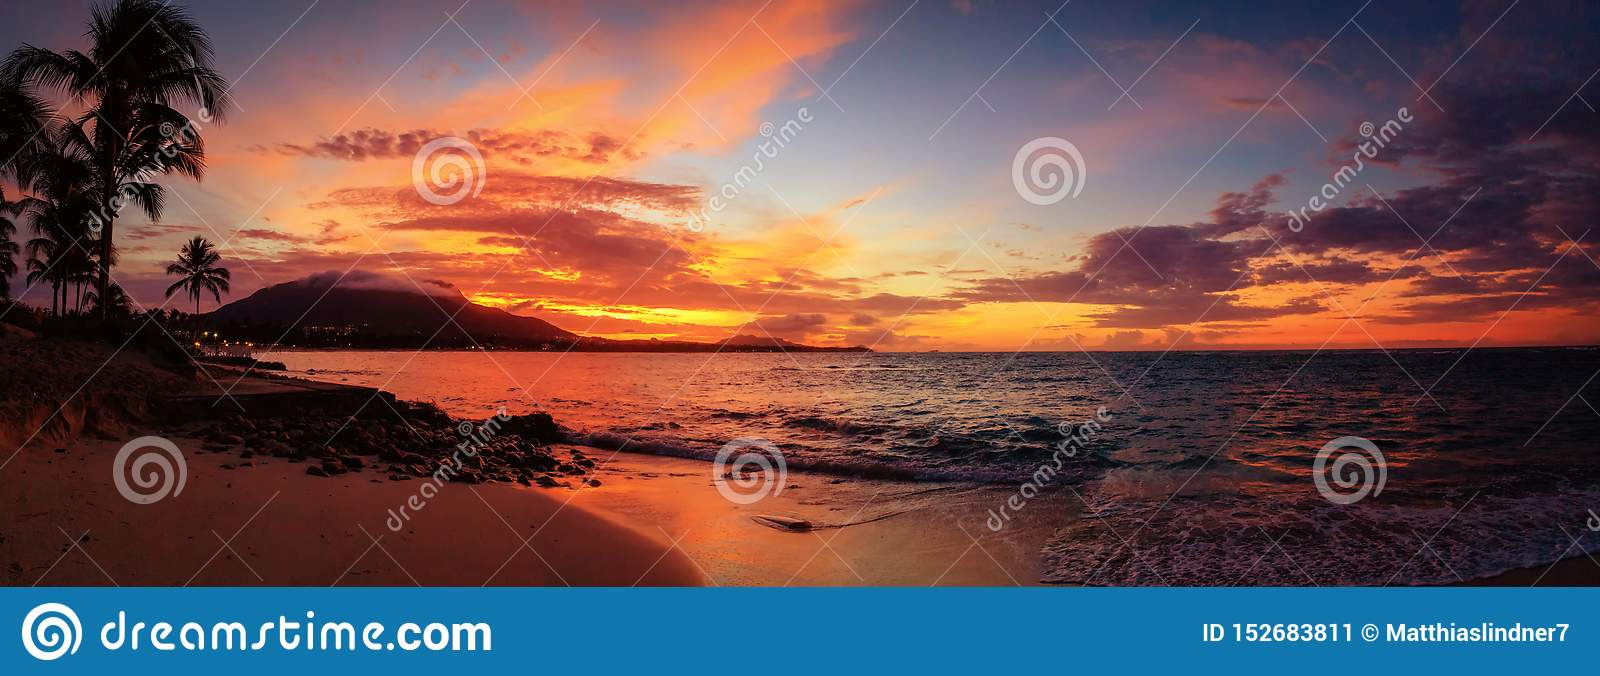 Red sunset panorama on the Caribbean beach with palm trees. Puerto Plata, Dominican Republic, Caribbean